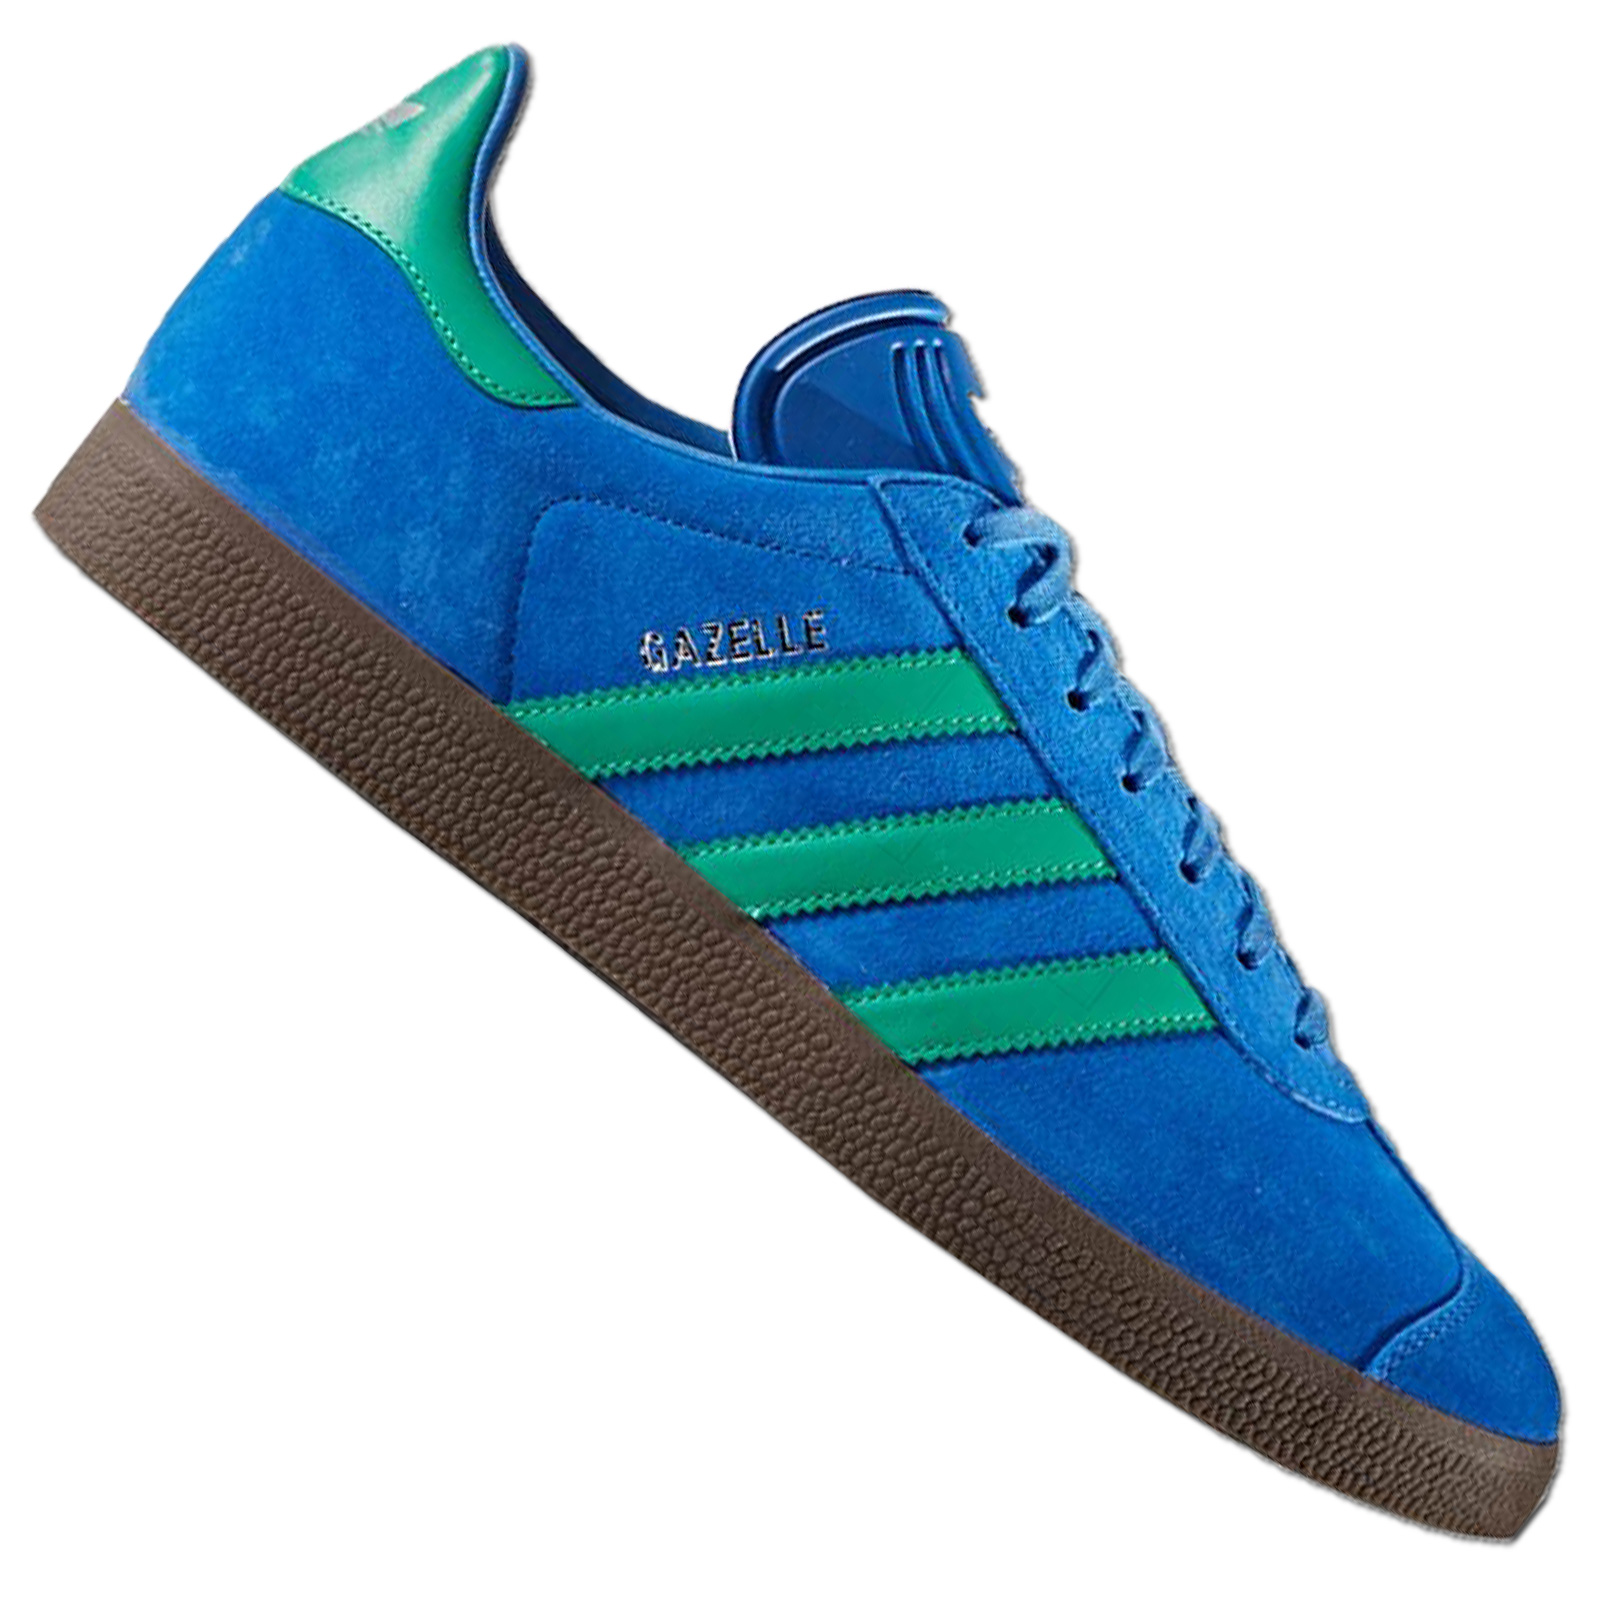 Details about Adidas Originals Gazelle Women's Sneakers Bb2755 Suede  Trainers Blue Green